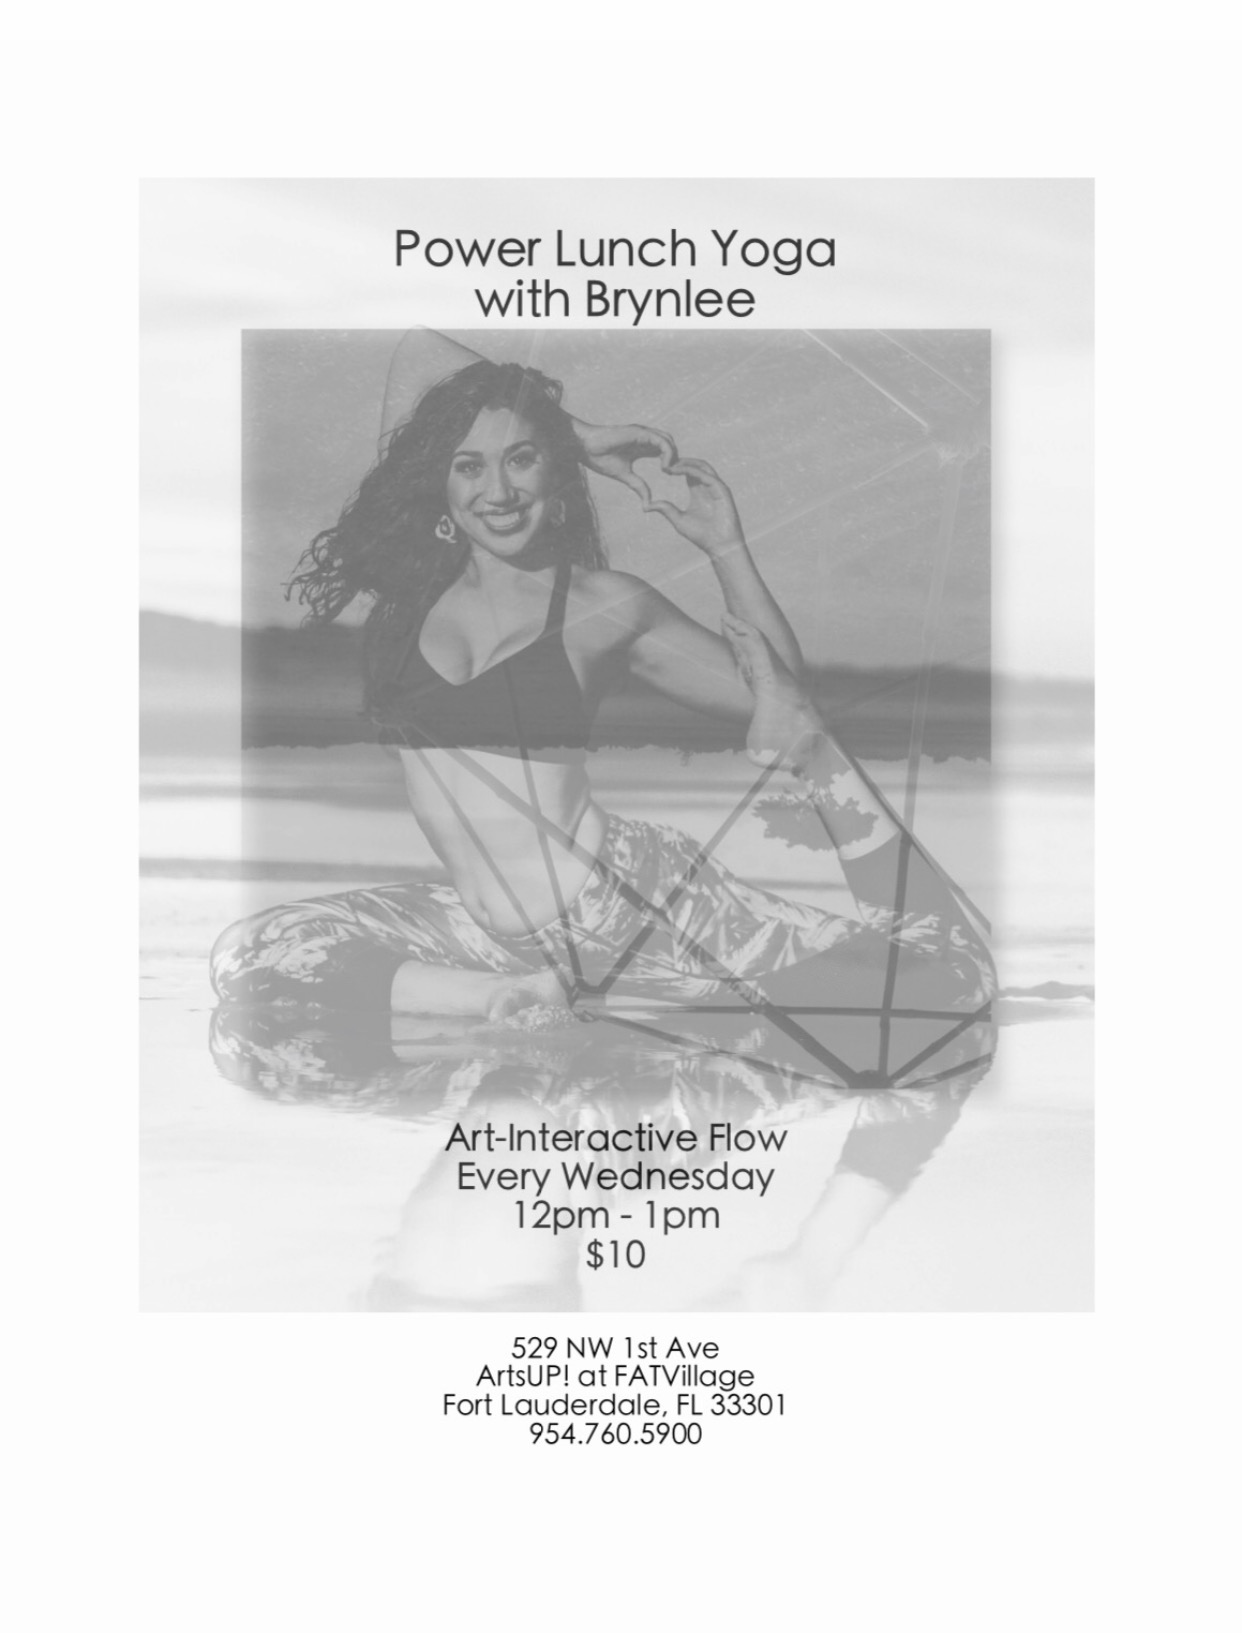 Power Lunch Yoga w/Brynlee at ArtsUP! in FATVillage